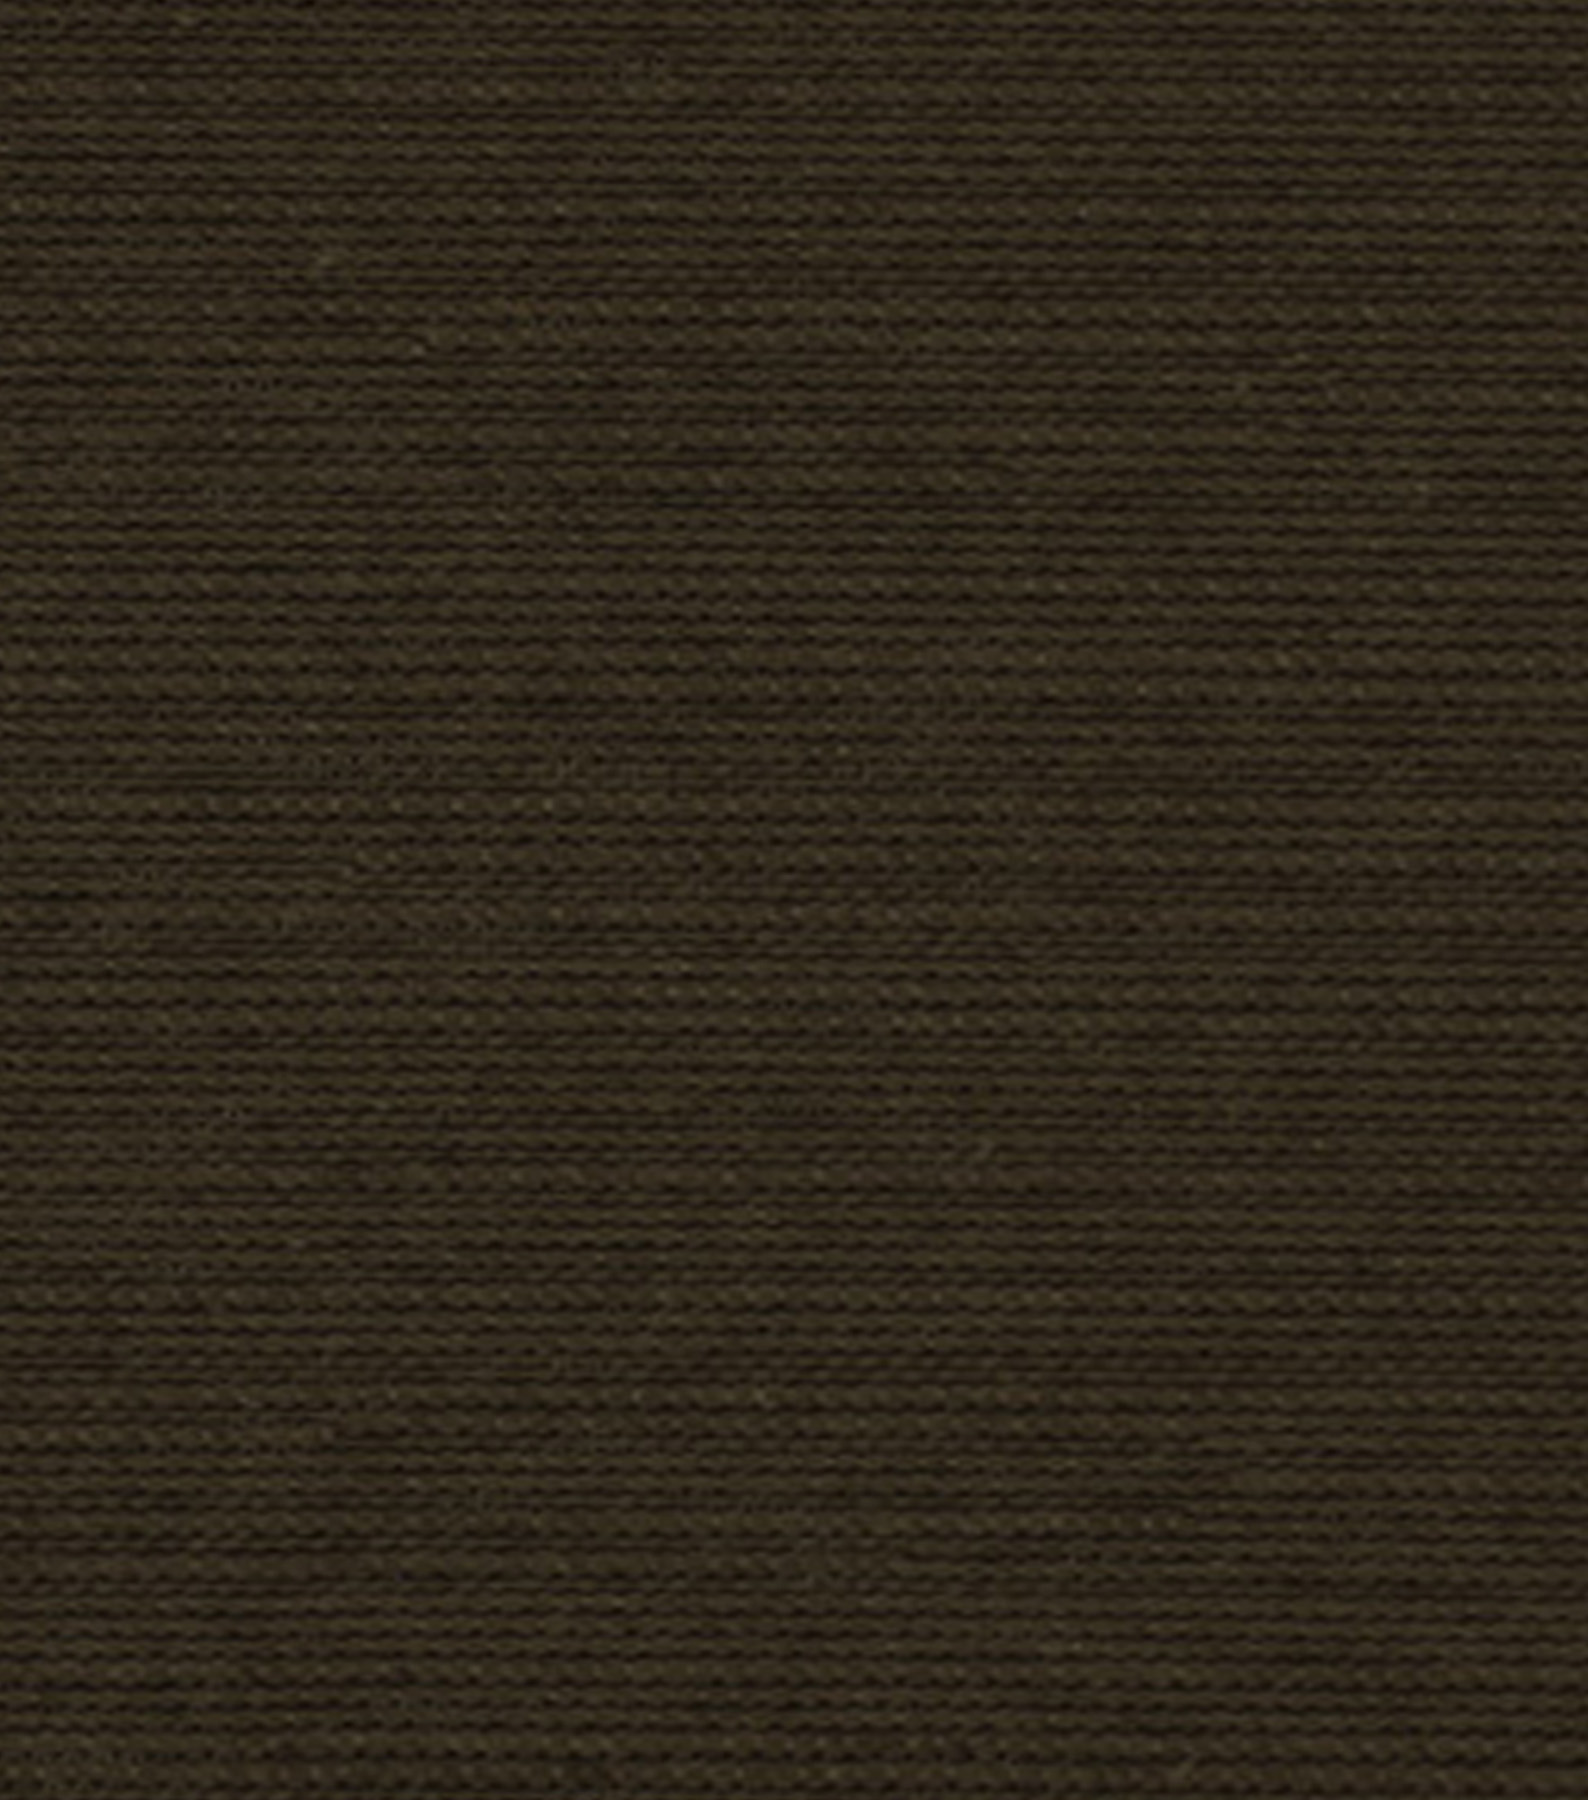 Home Decor 8\u0022x8\u0022 Fabric Swatch-Signature Series Slubby Texture Expresso